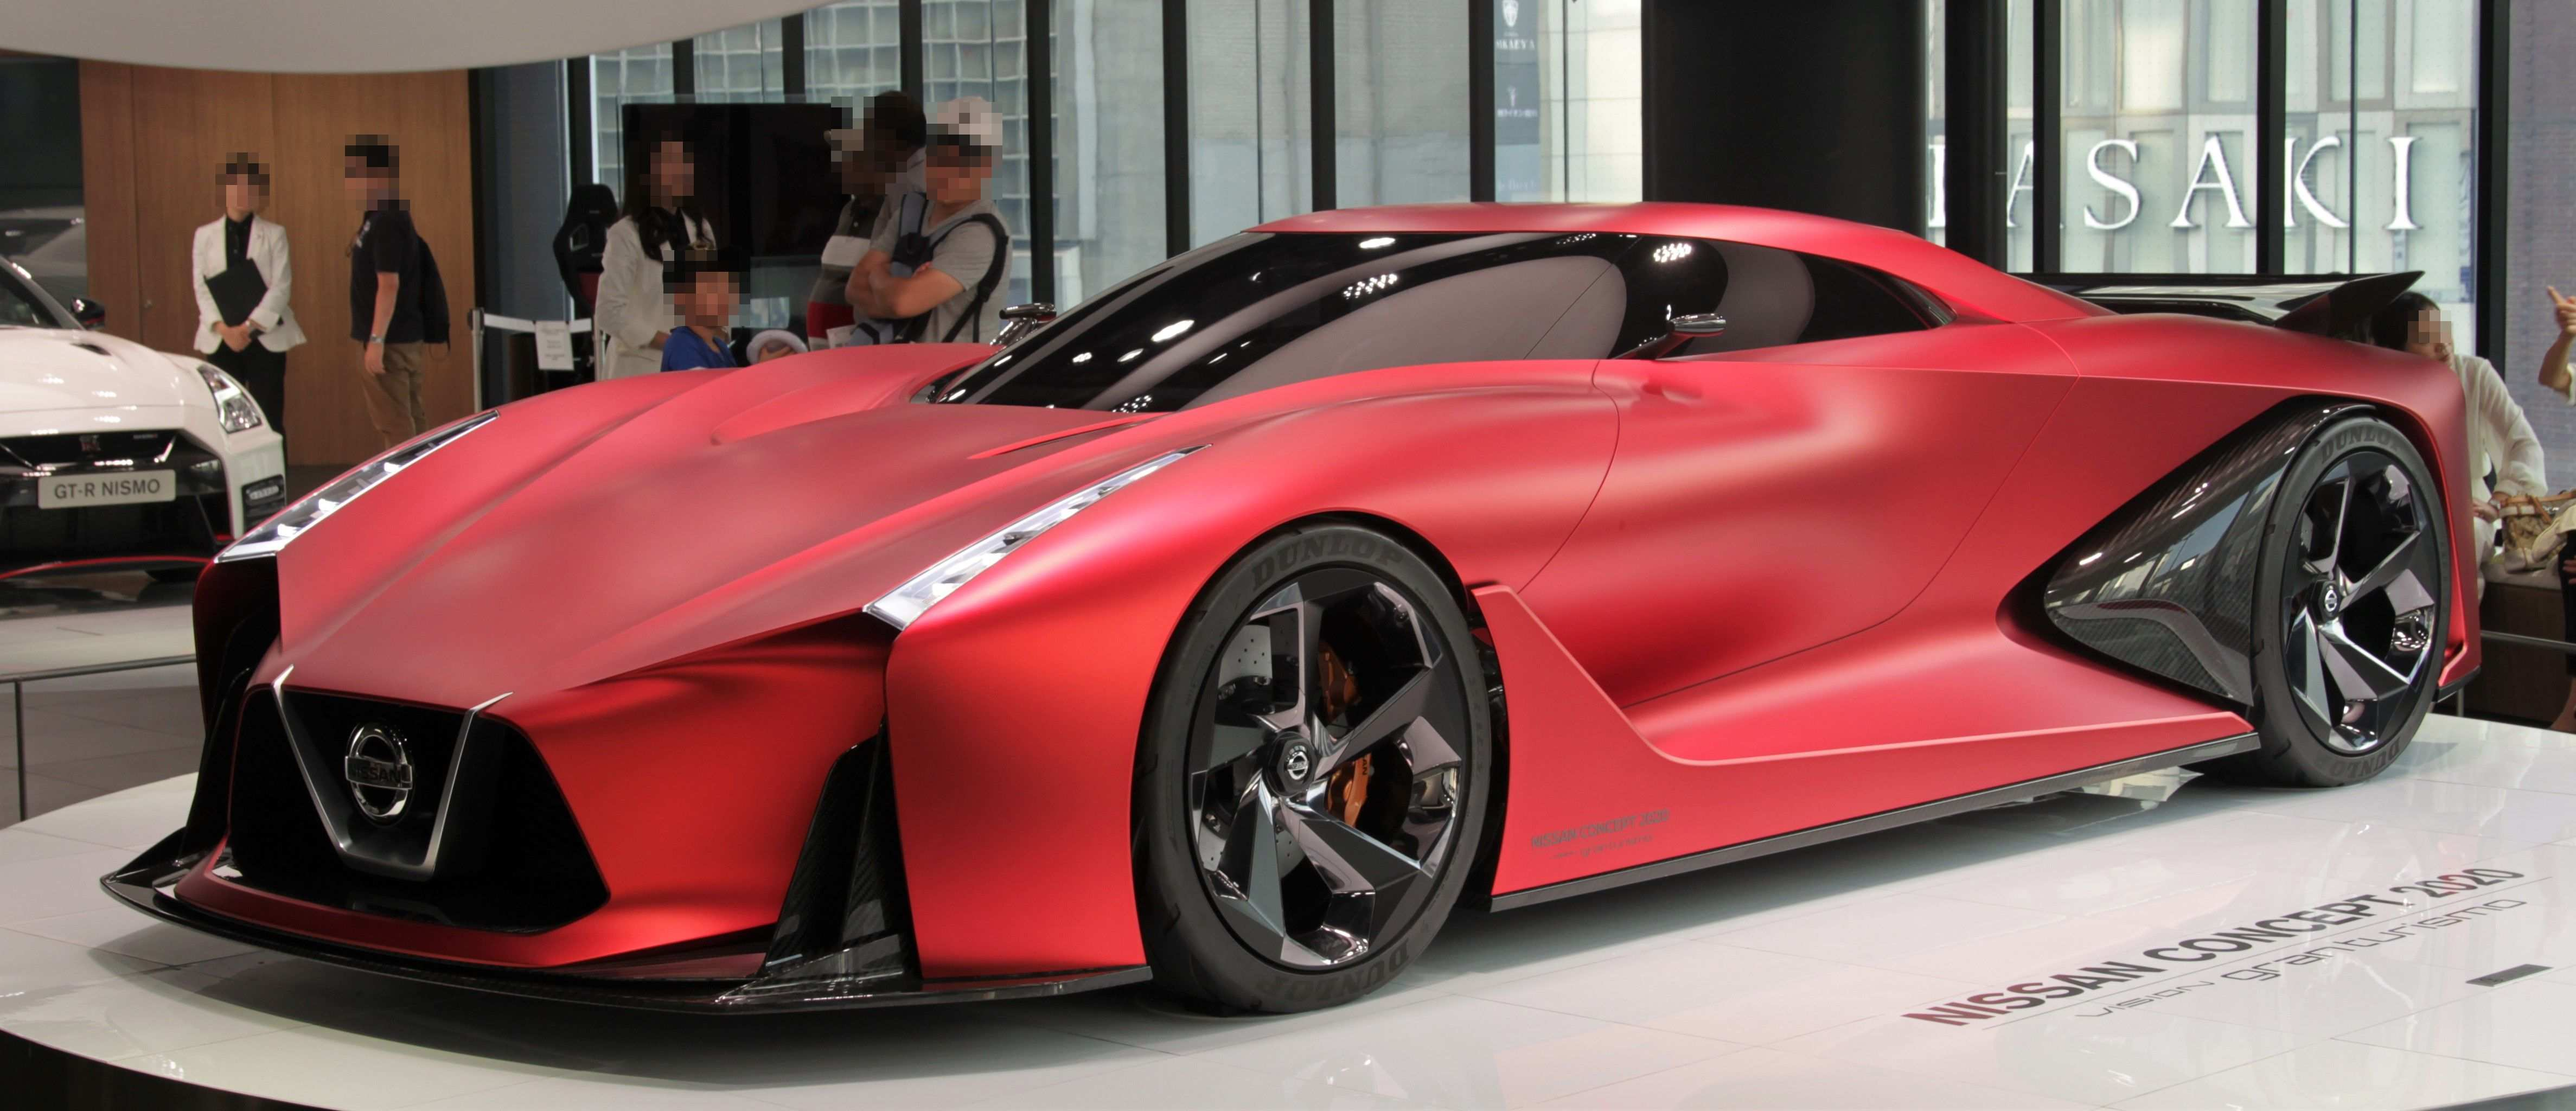 53 All New Nissan Concept 2020 Gran Turismo Overview